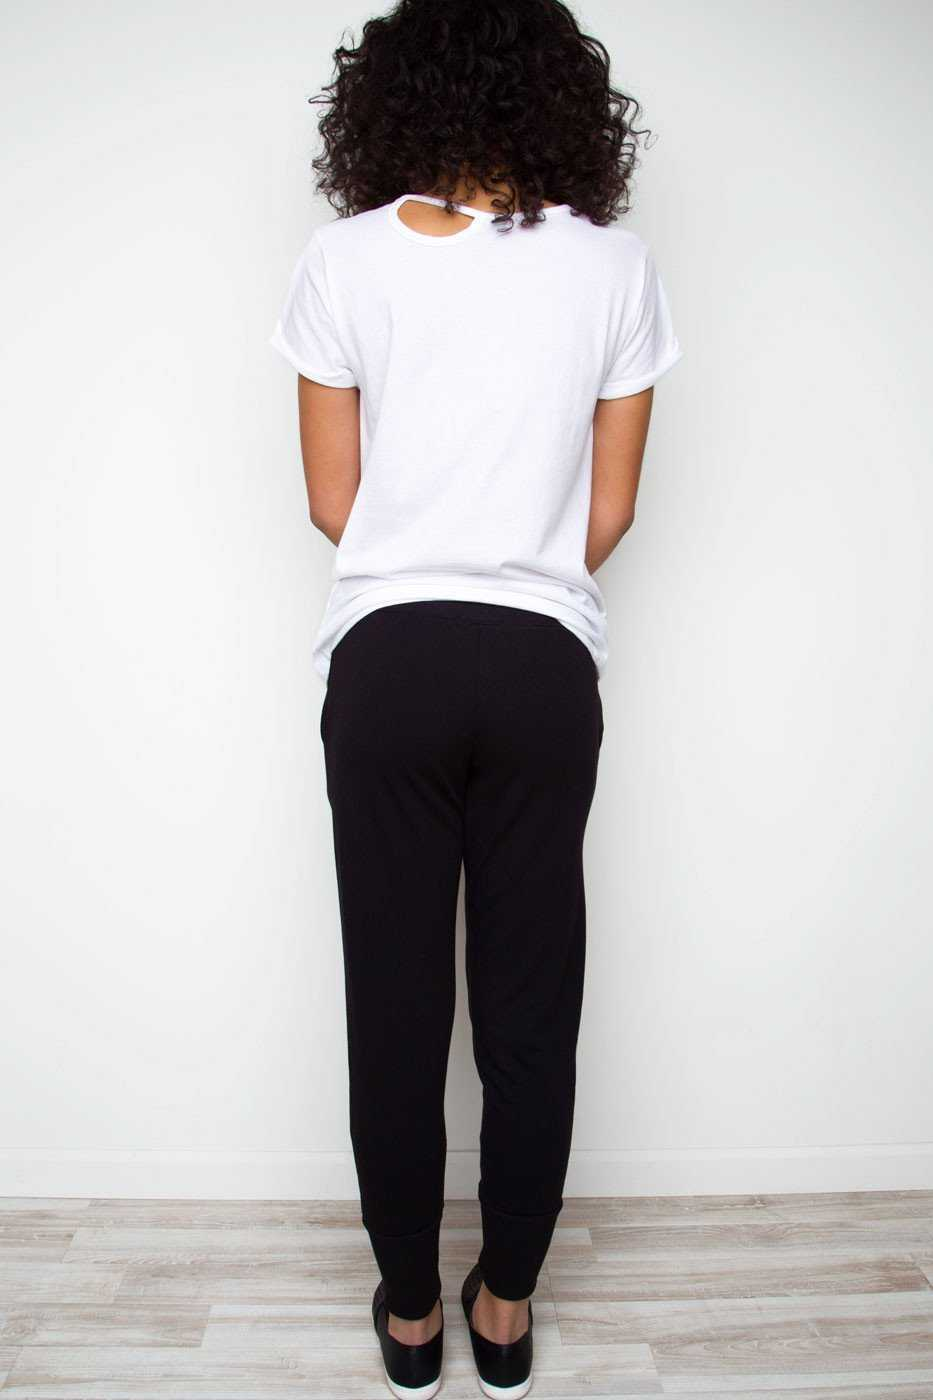 Pants - Next To You Joggers - Black